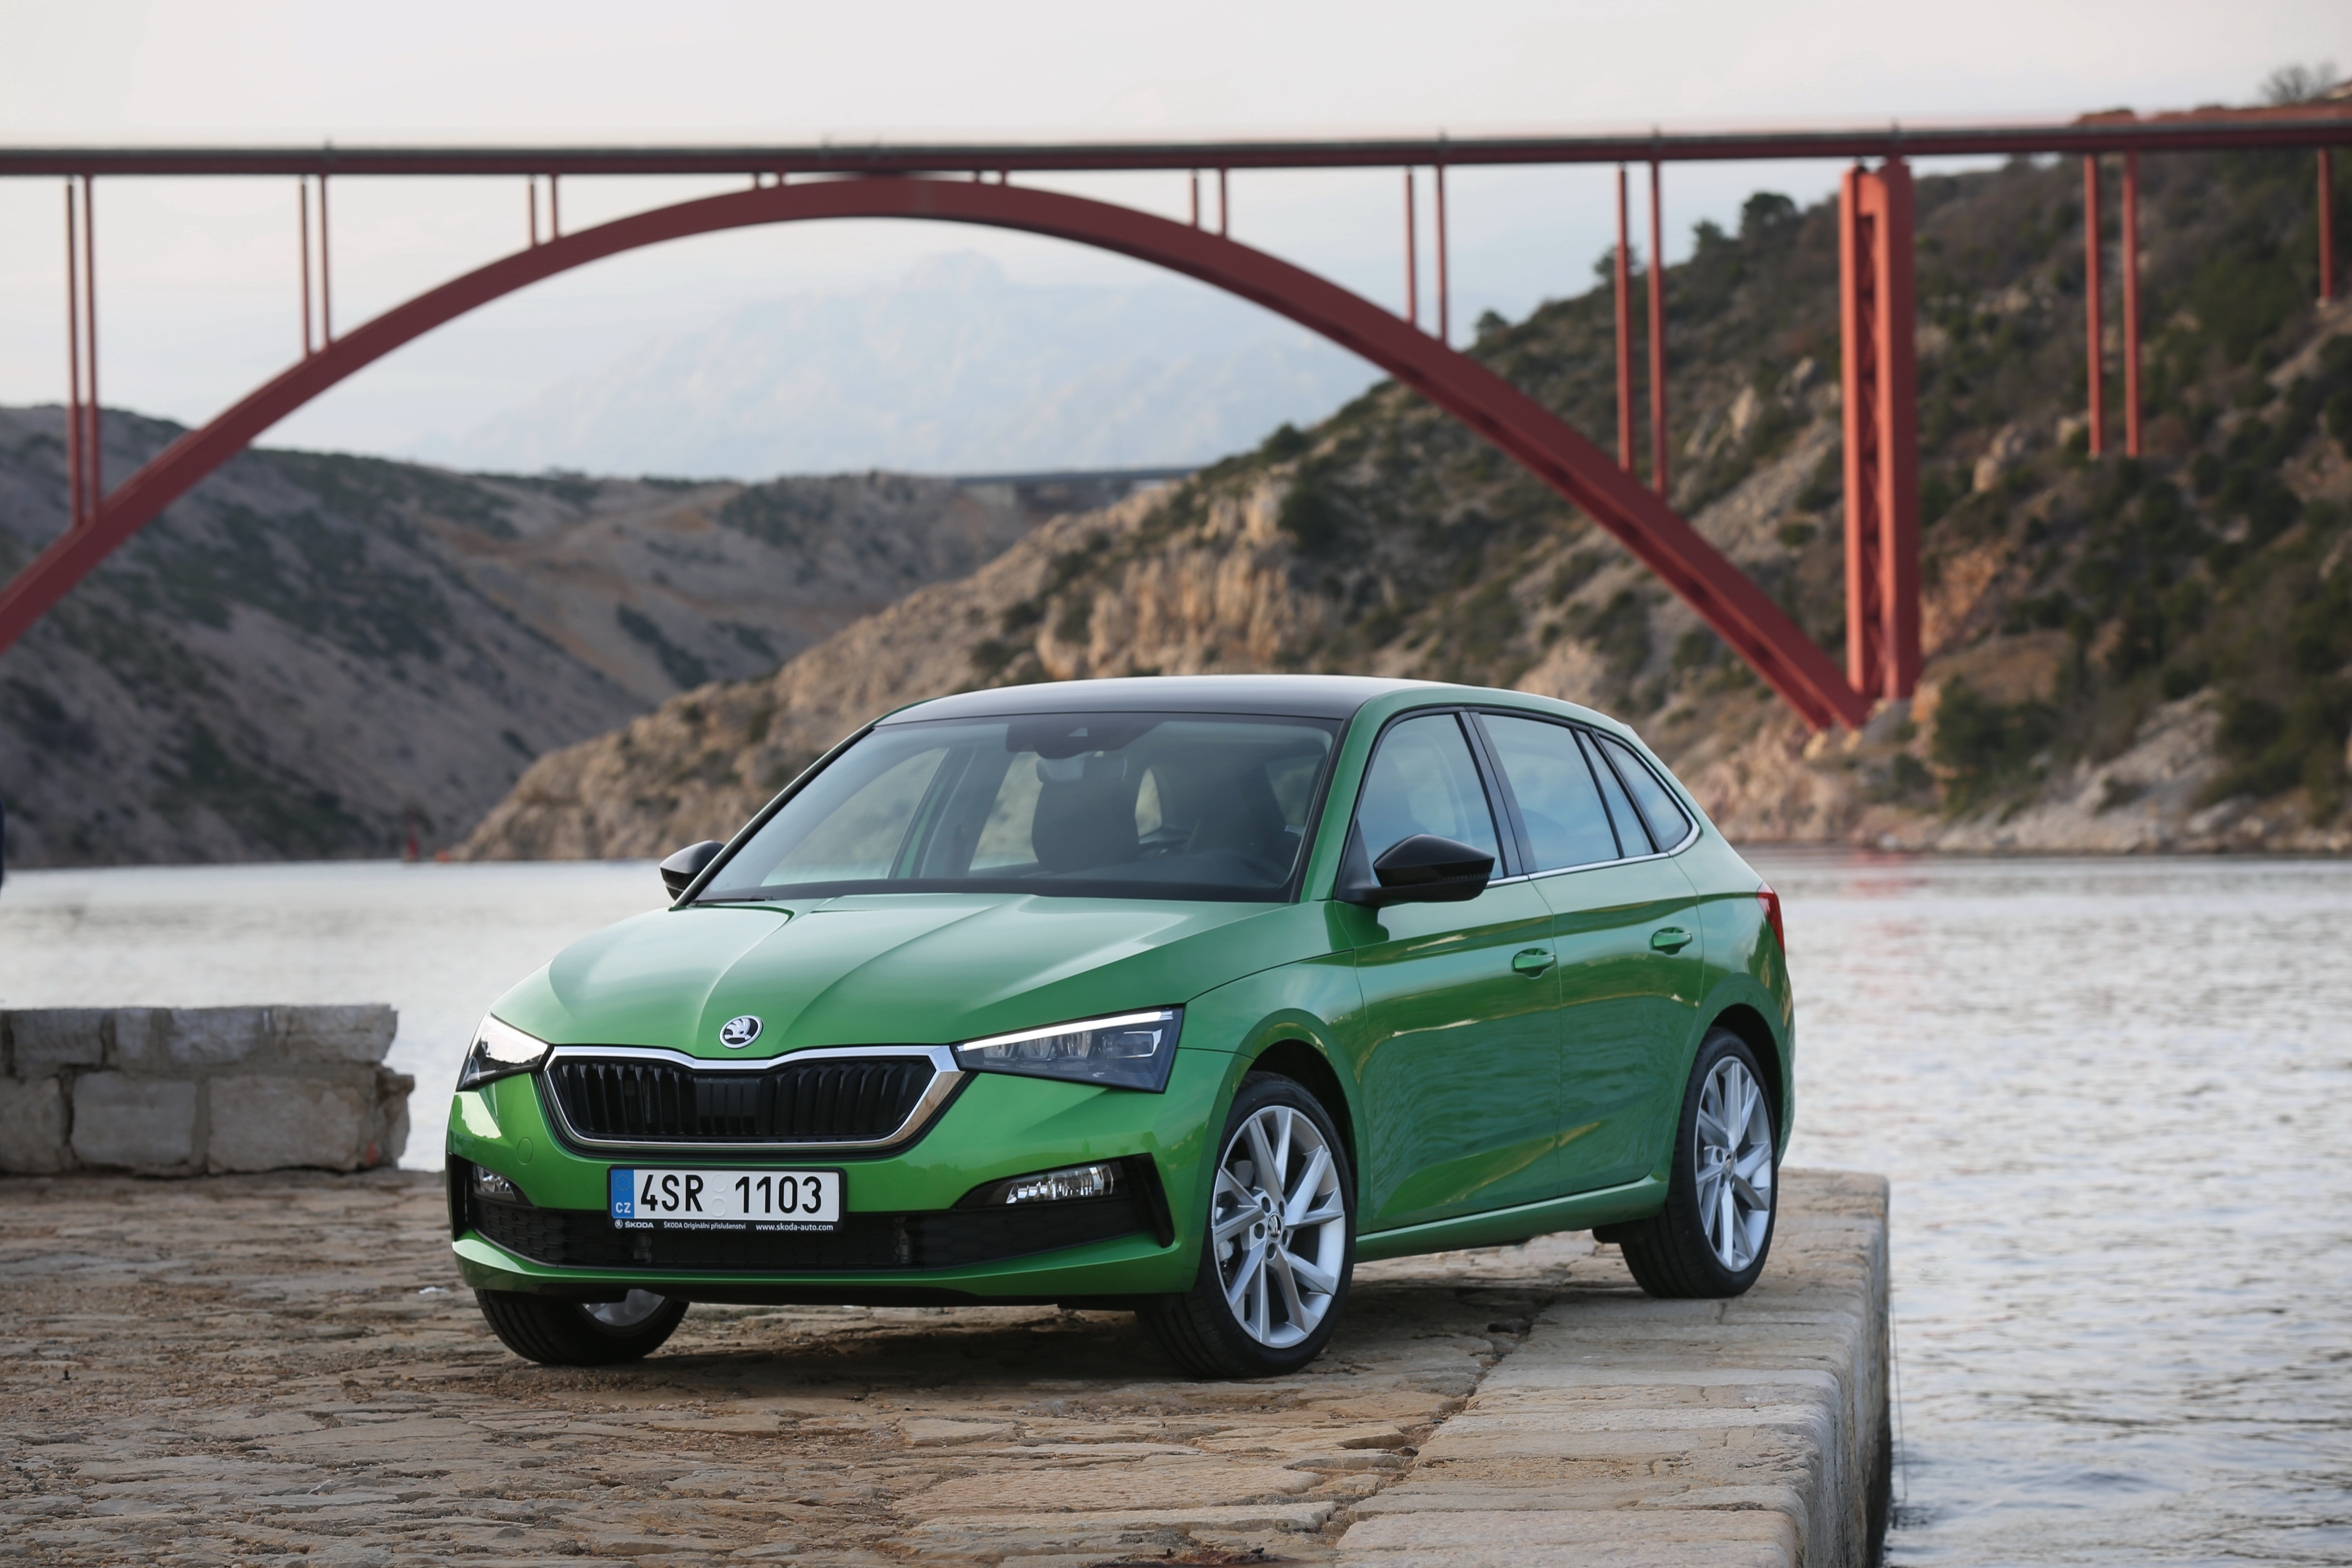 Emotive And Dynamic The New Skoda Design Language And Refined